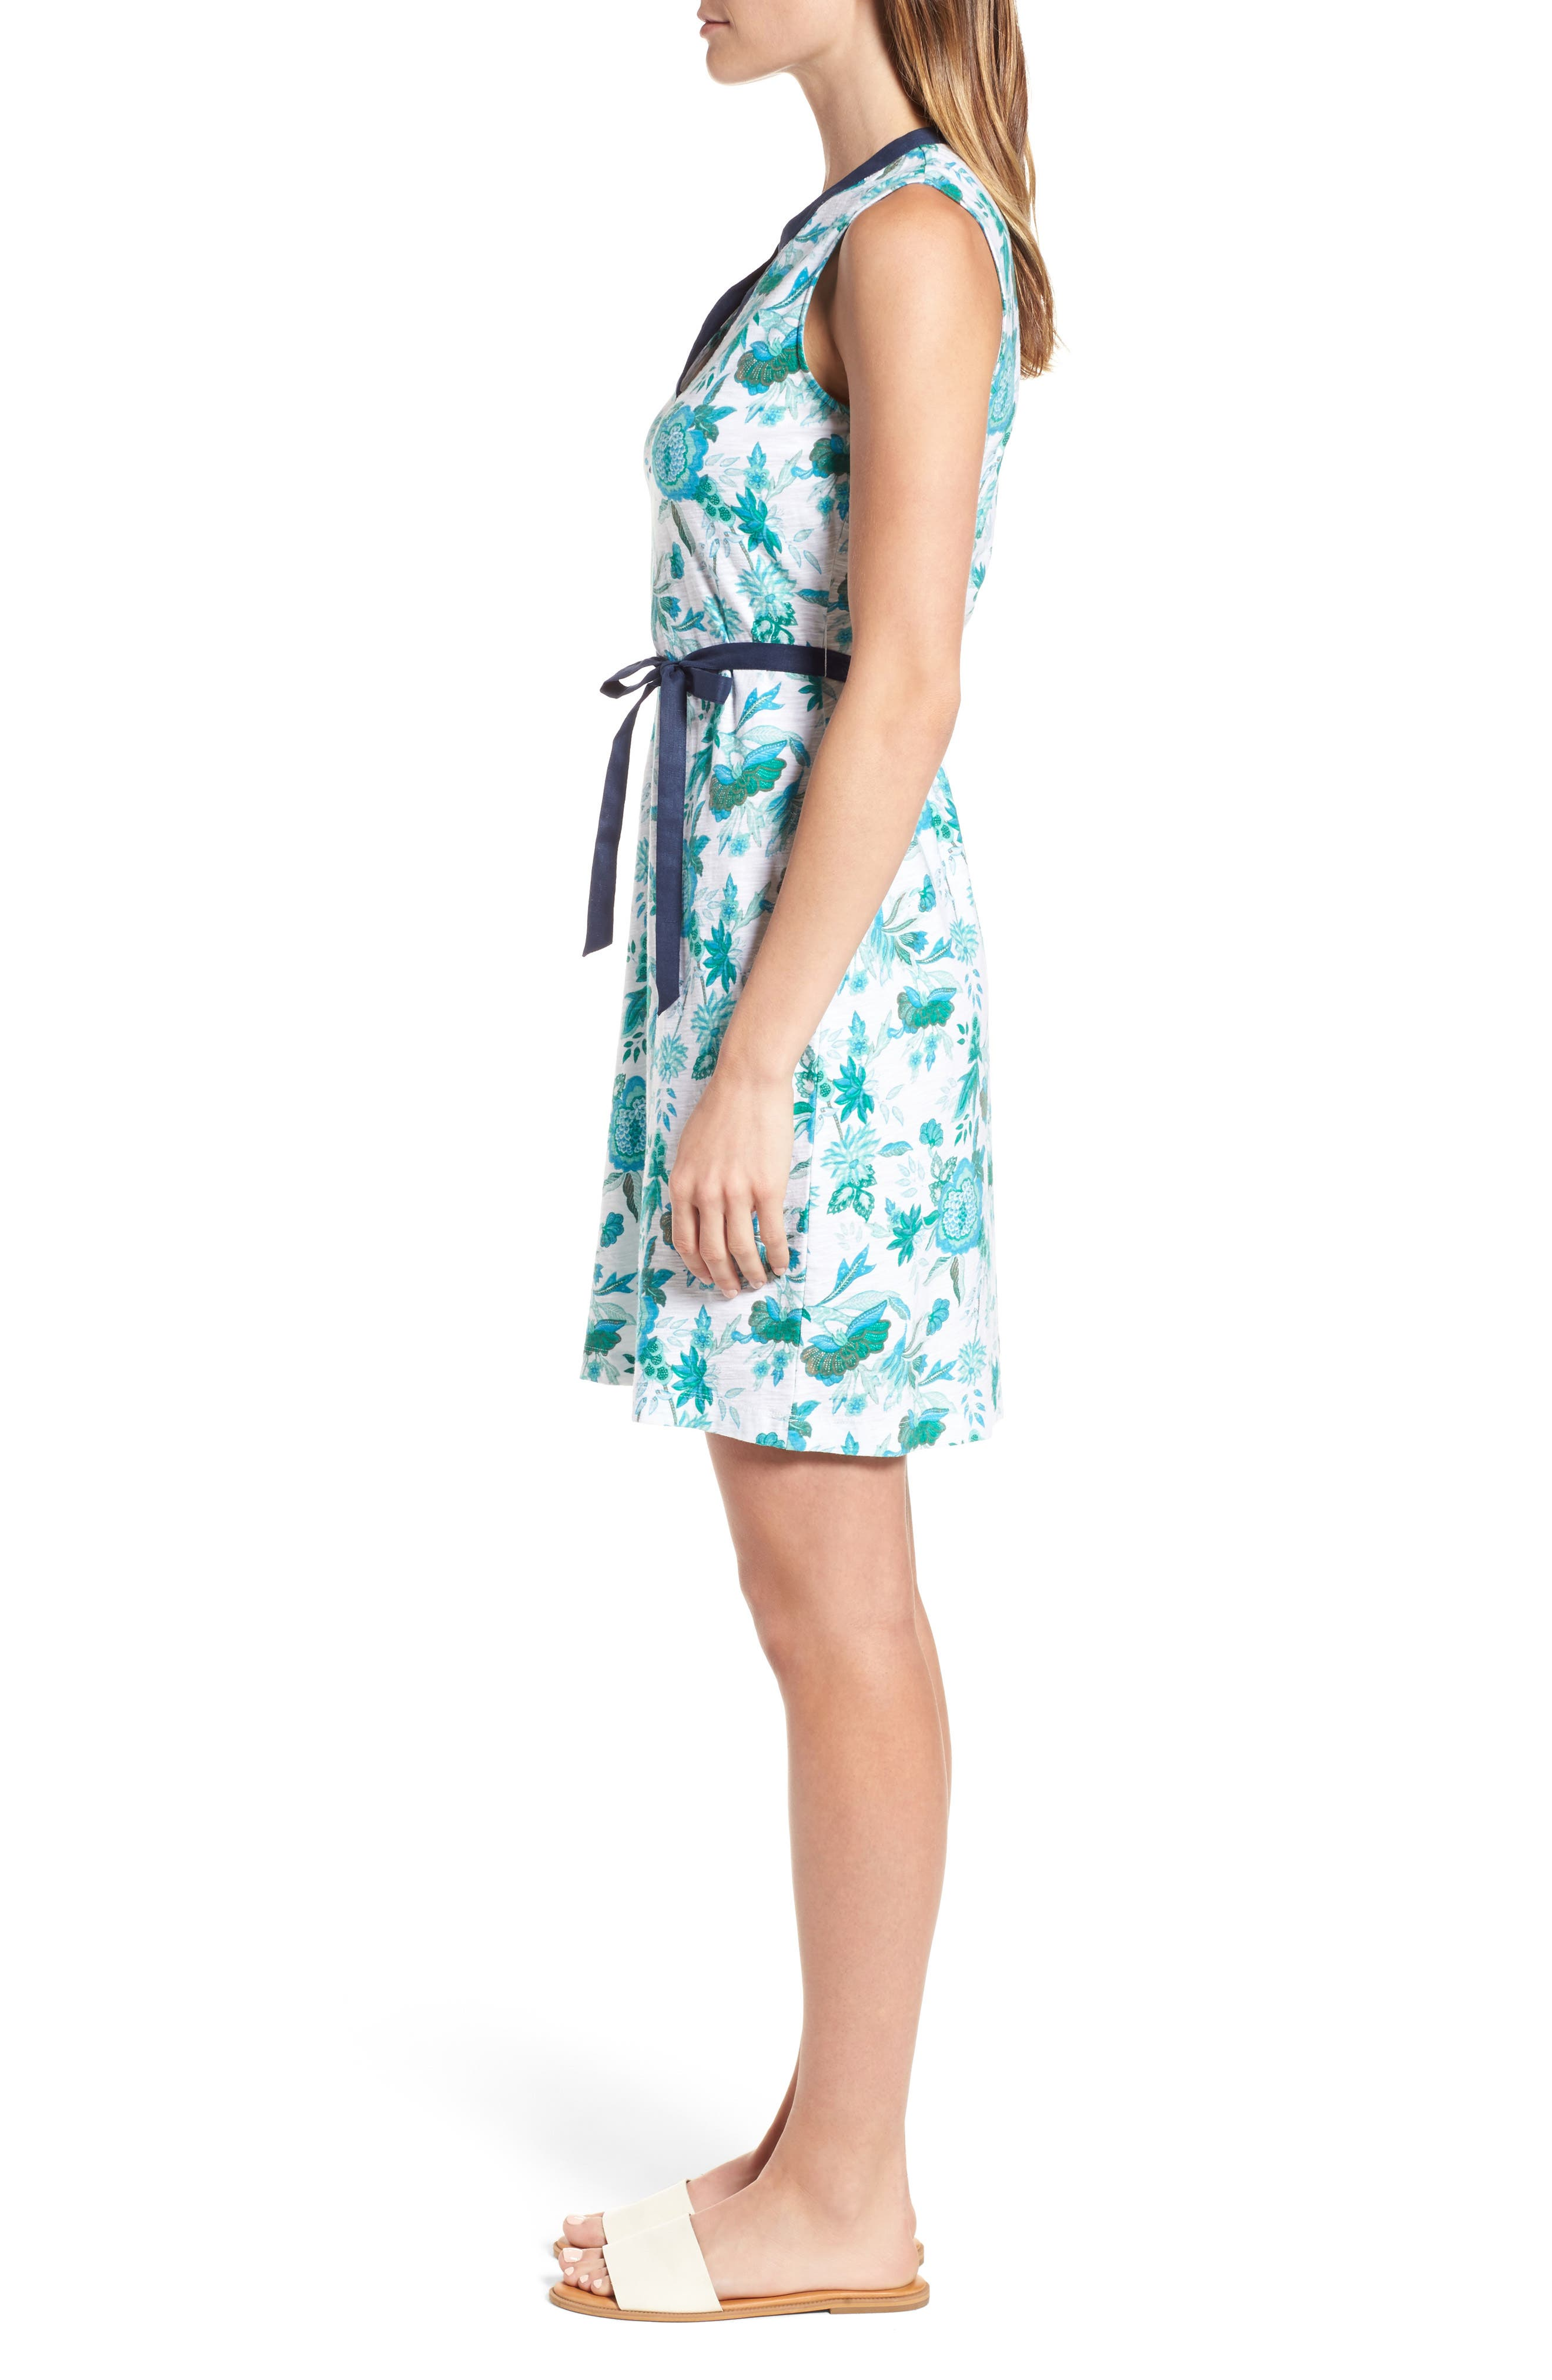 Naxos Blooms Short Jersey Dress,                             Alternate thumbnail 3, color,                             300